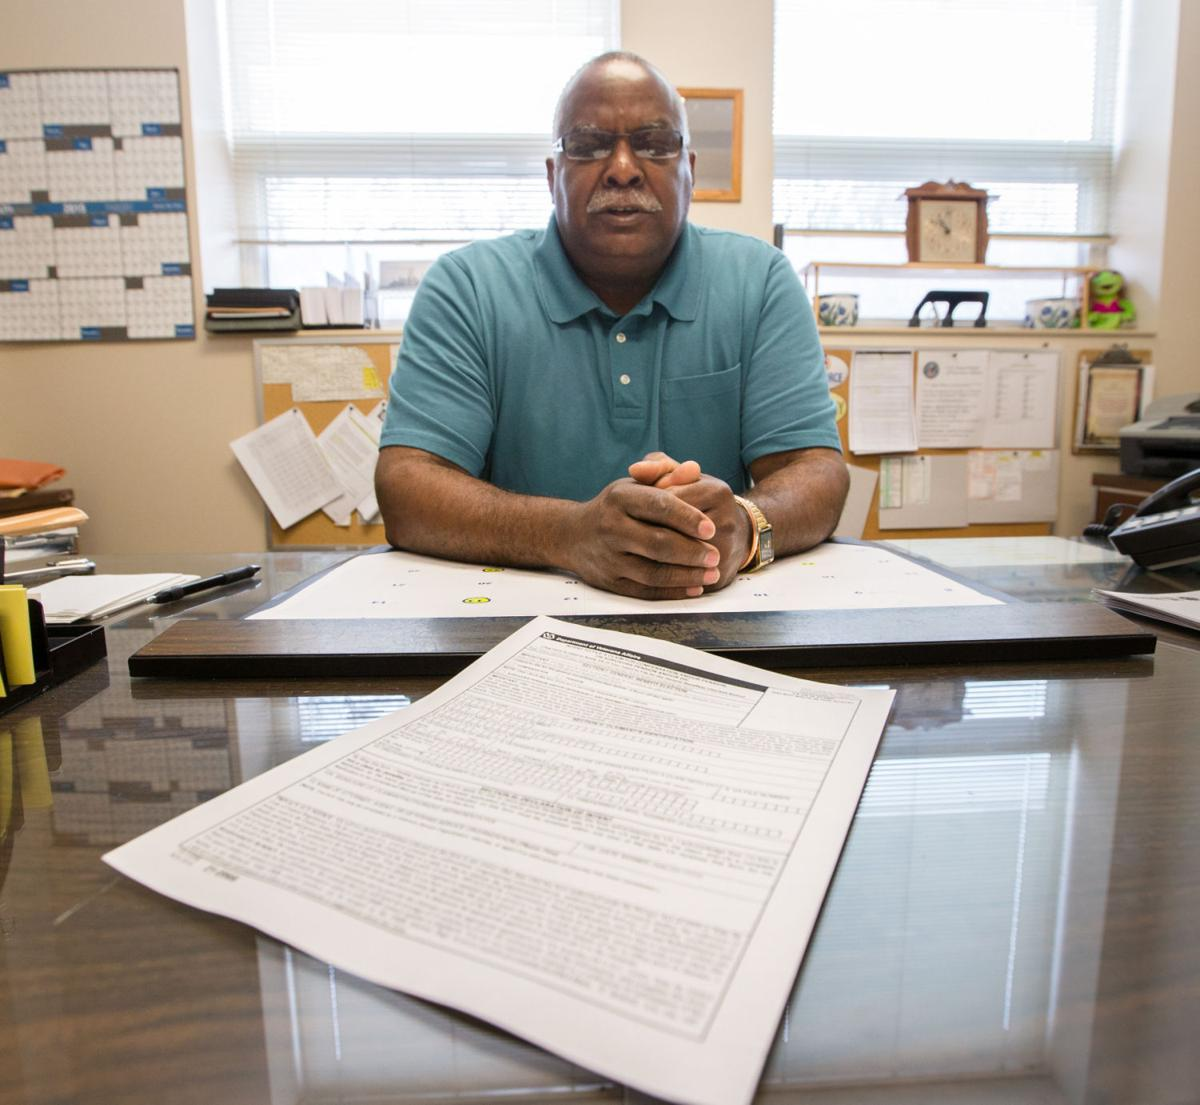 New online VA form worries some who counsel veterans